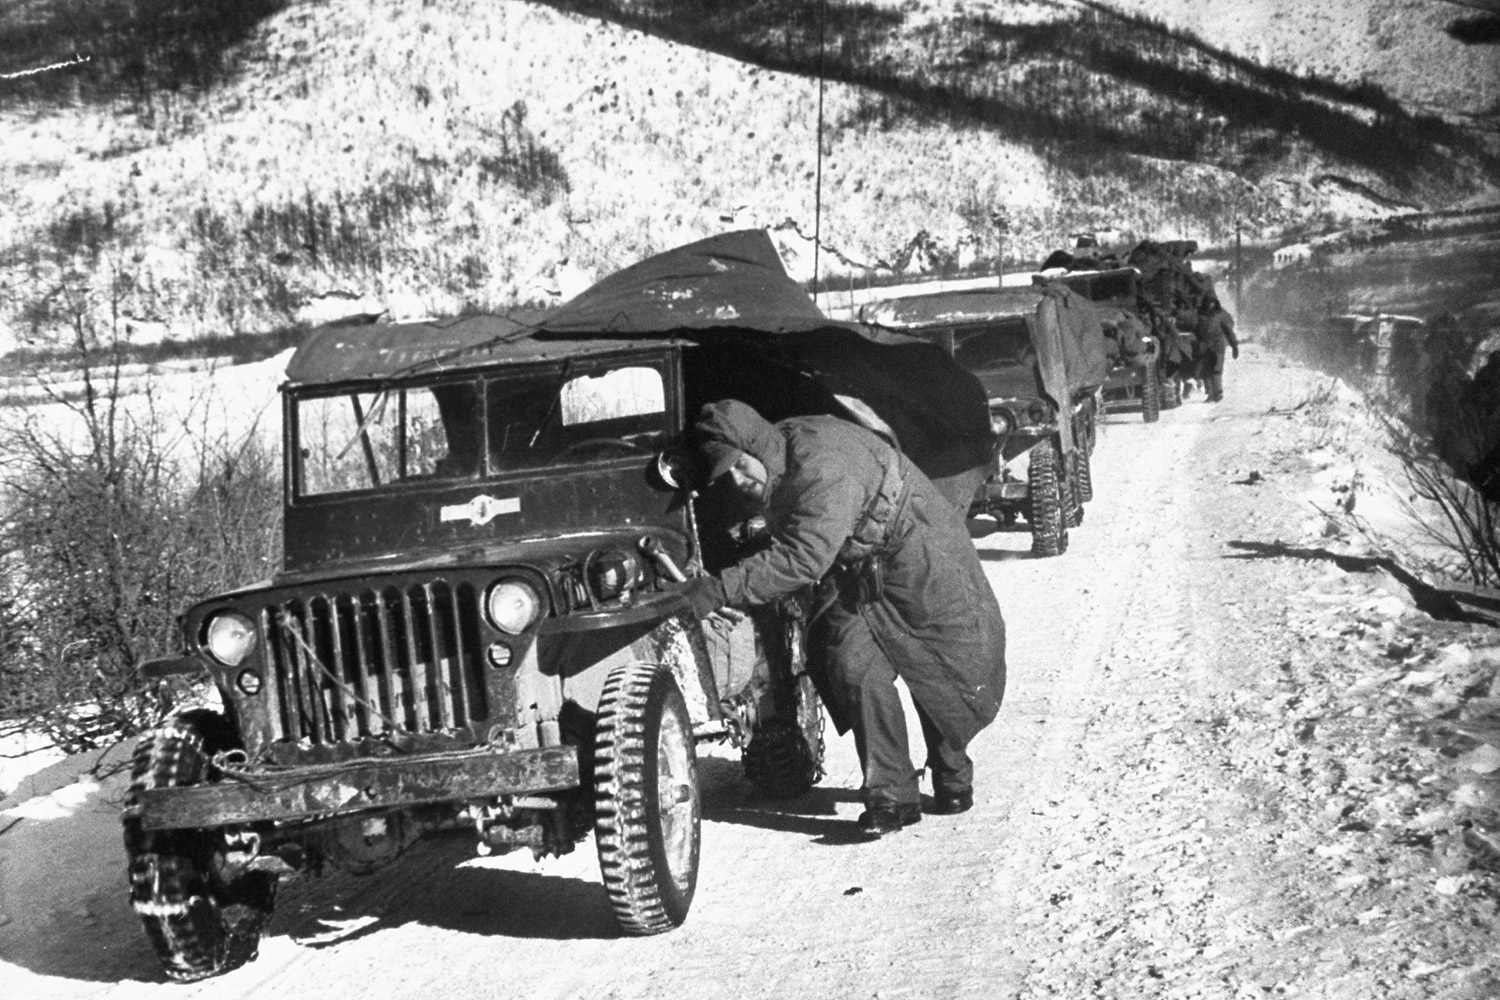 U.S. Marine crouching down next to his jeep while leading a convoy of vehicles during the 1st Marine Division's retreat down canyon road they called  Nightmare Alley,  after being cut off by the Red Chinese and under fire from nearby hills in December 1950.